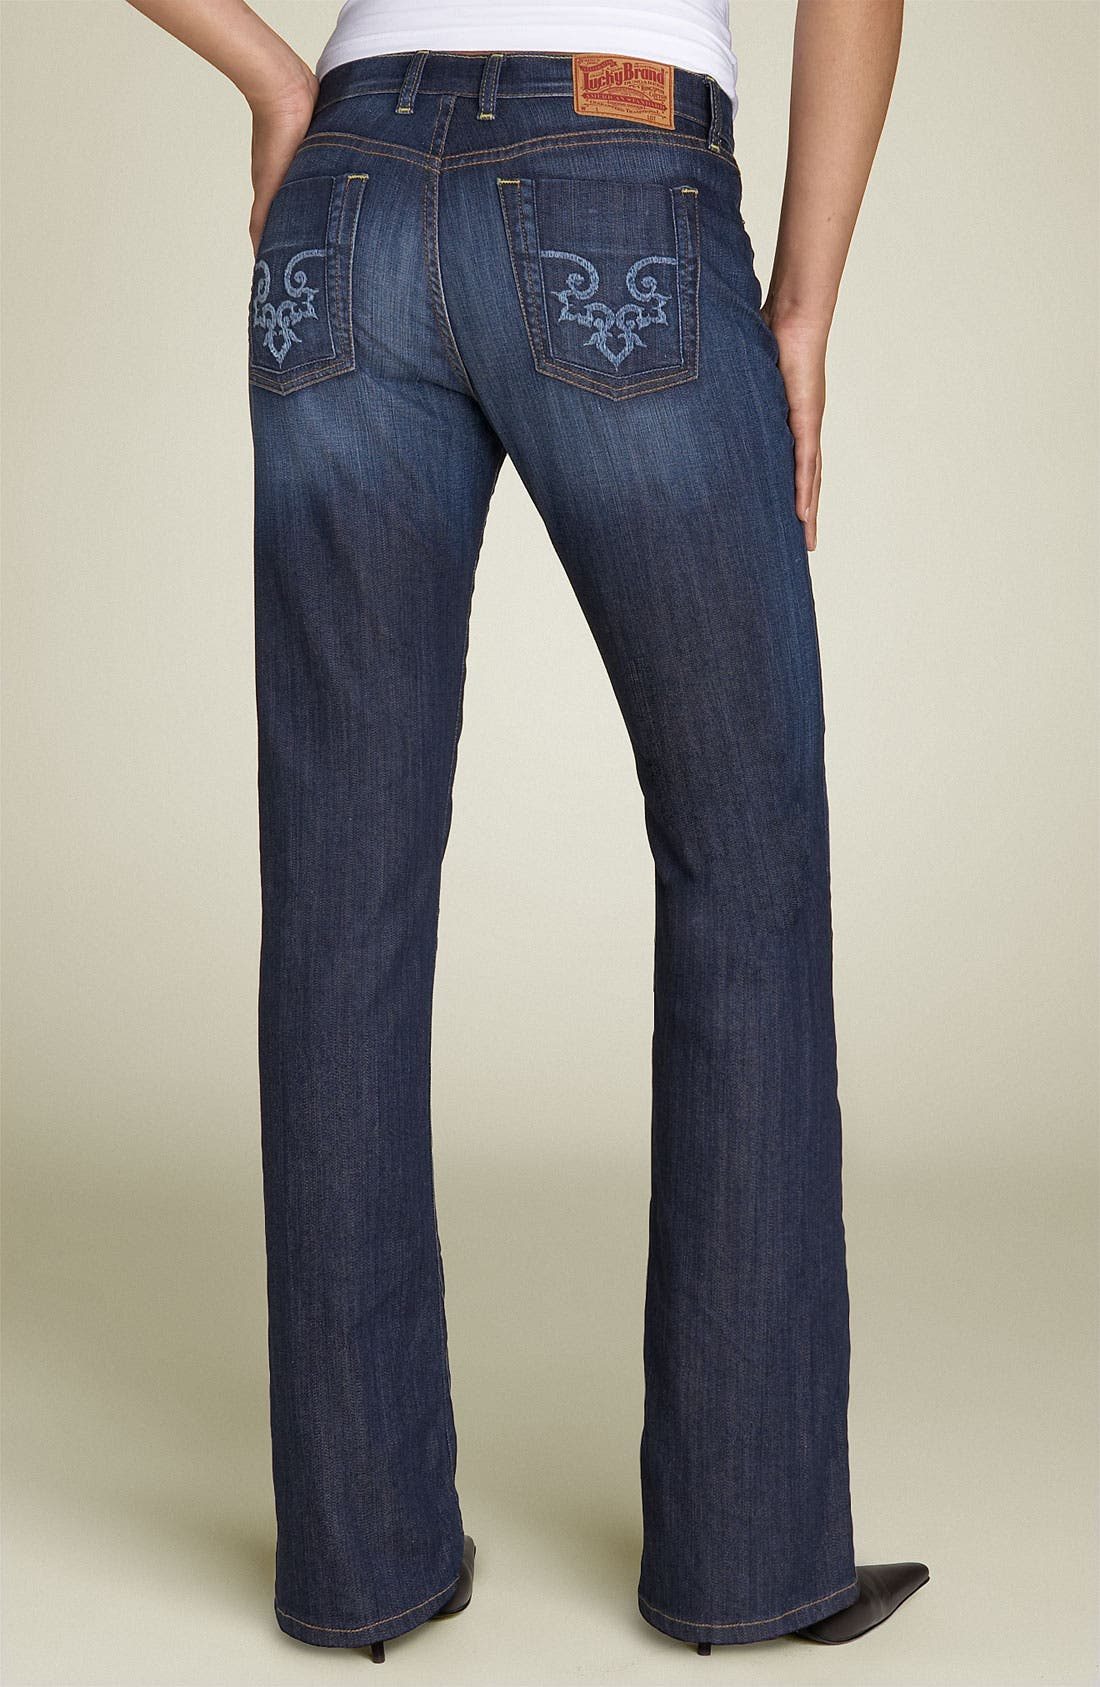 LUCKY BRAND,                             'Delaware Classic Rider' Stretch Jeans,                             Main thumbnail 1, color,                             460